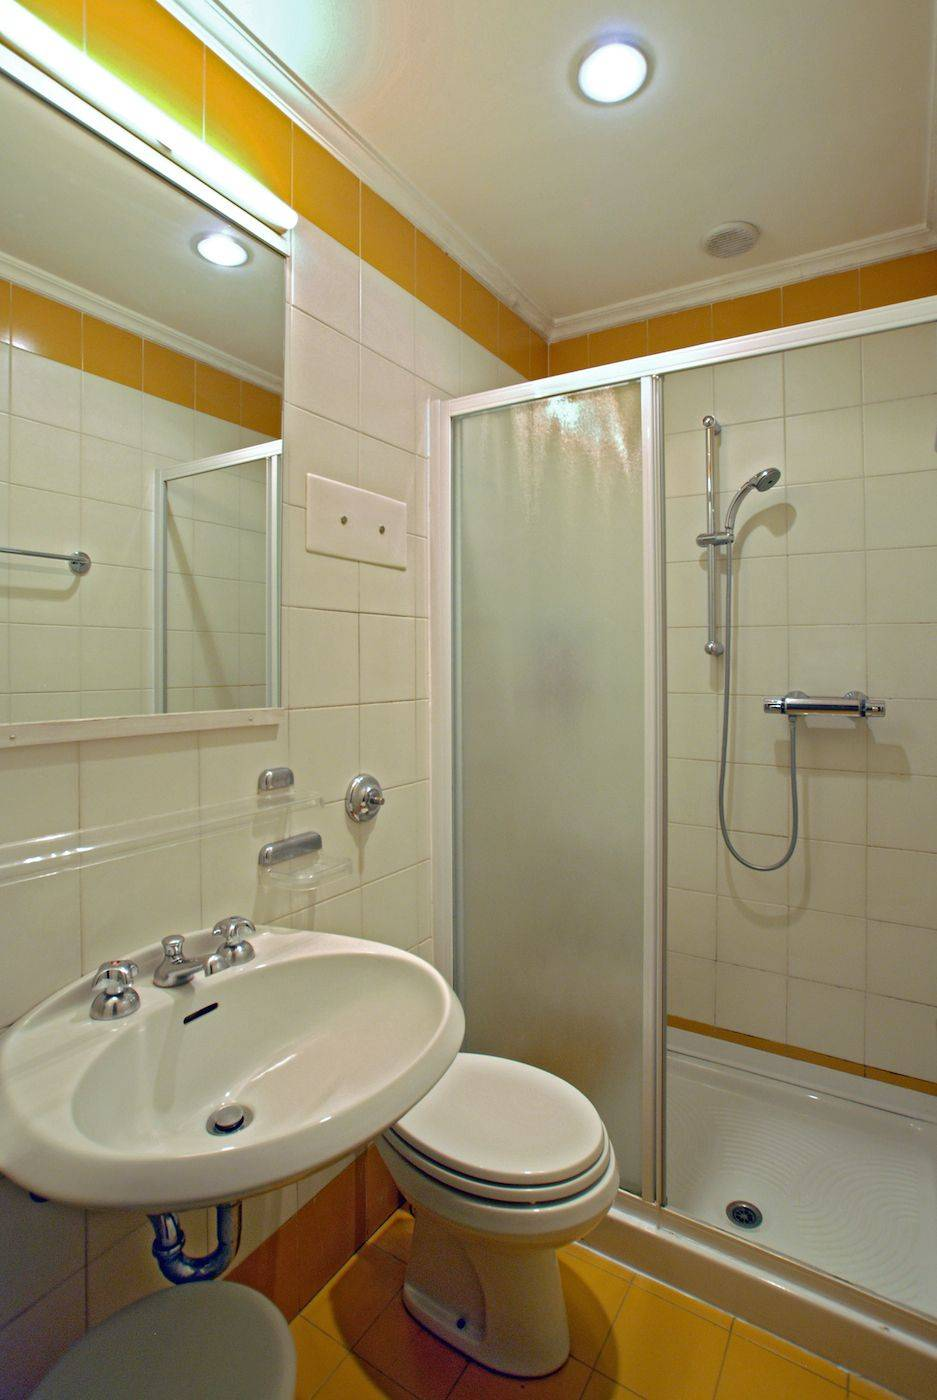 the bathrooom with shower